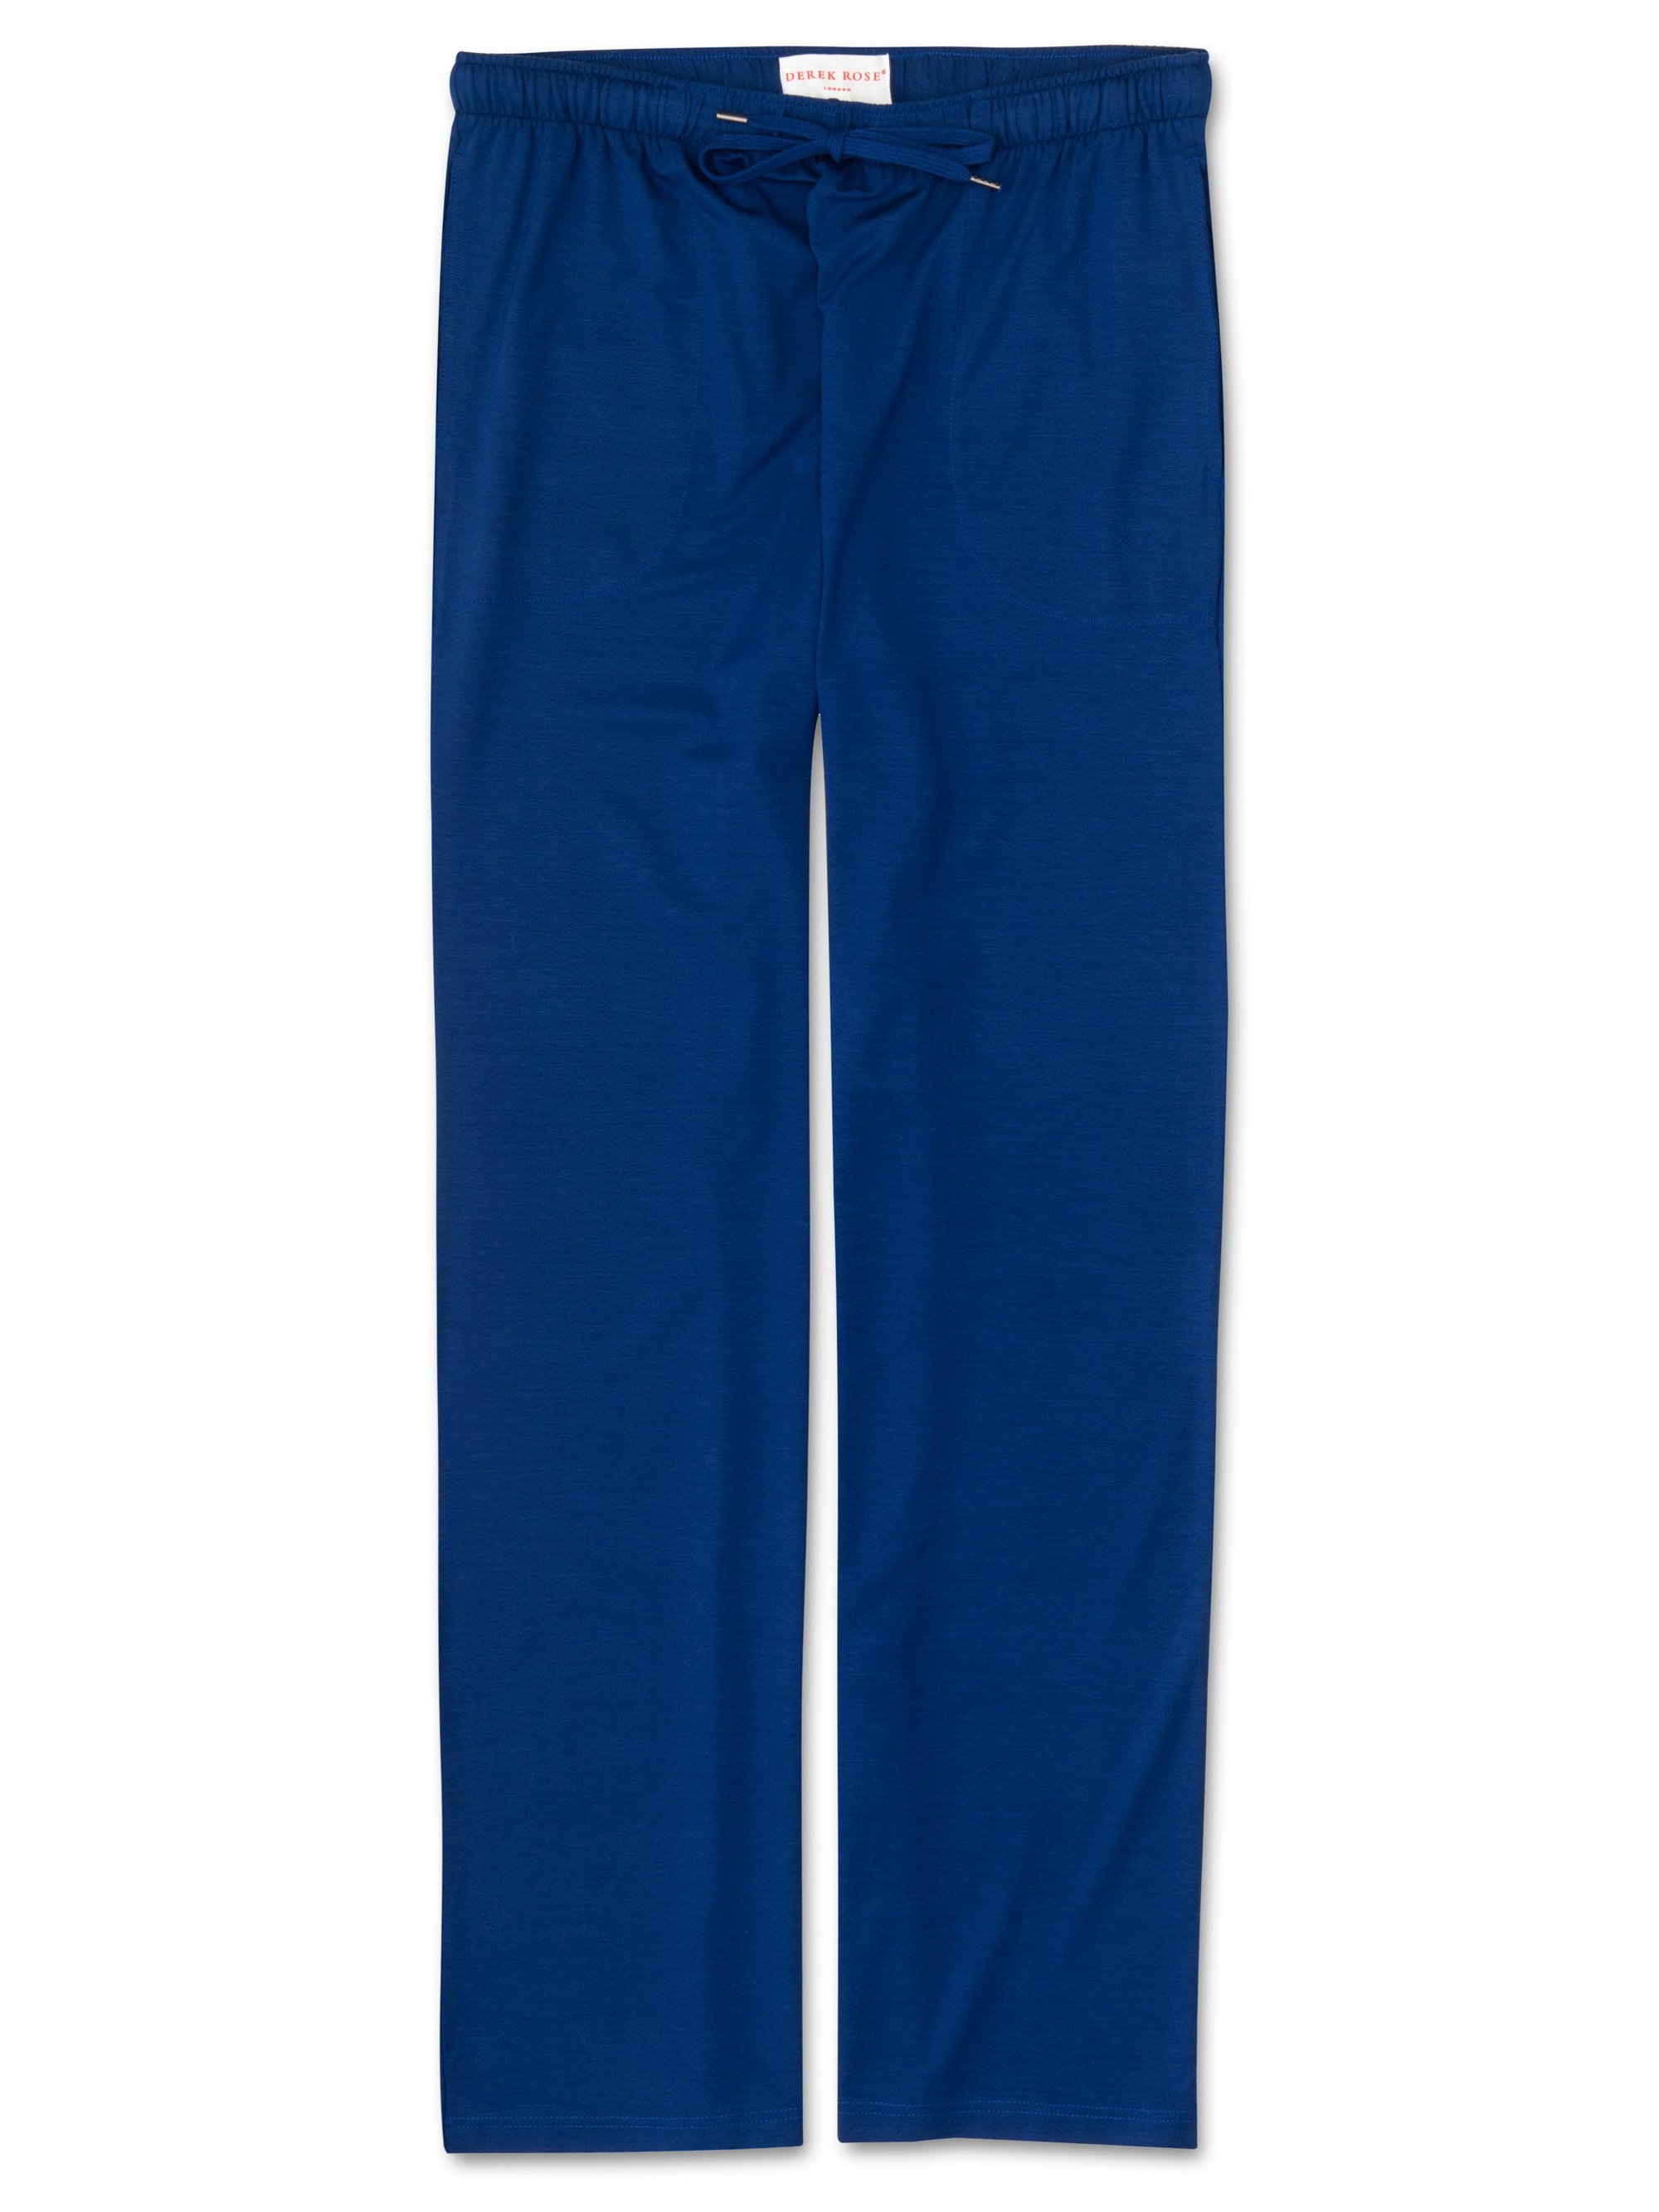 Men's Jersey Trousers Basel Micro Modal Stretch Midnight